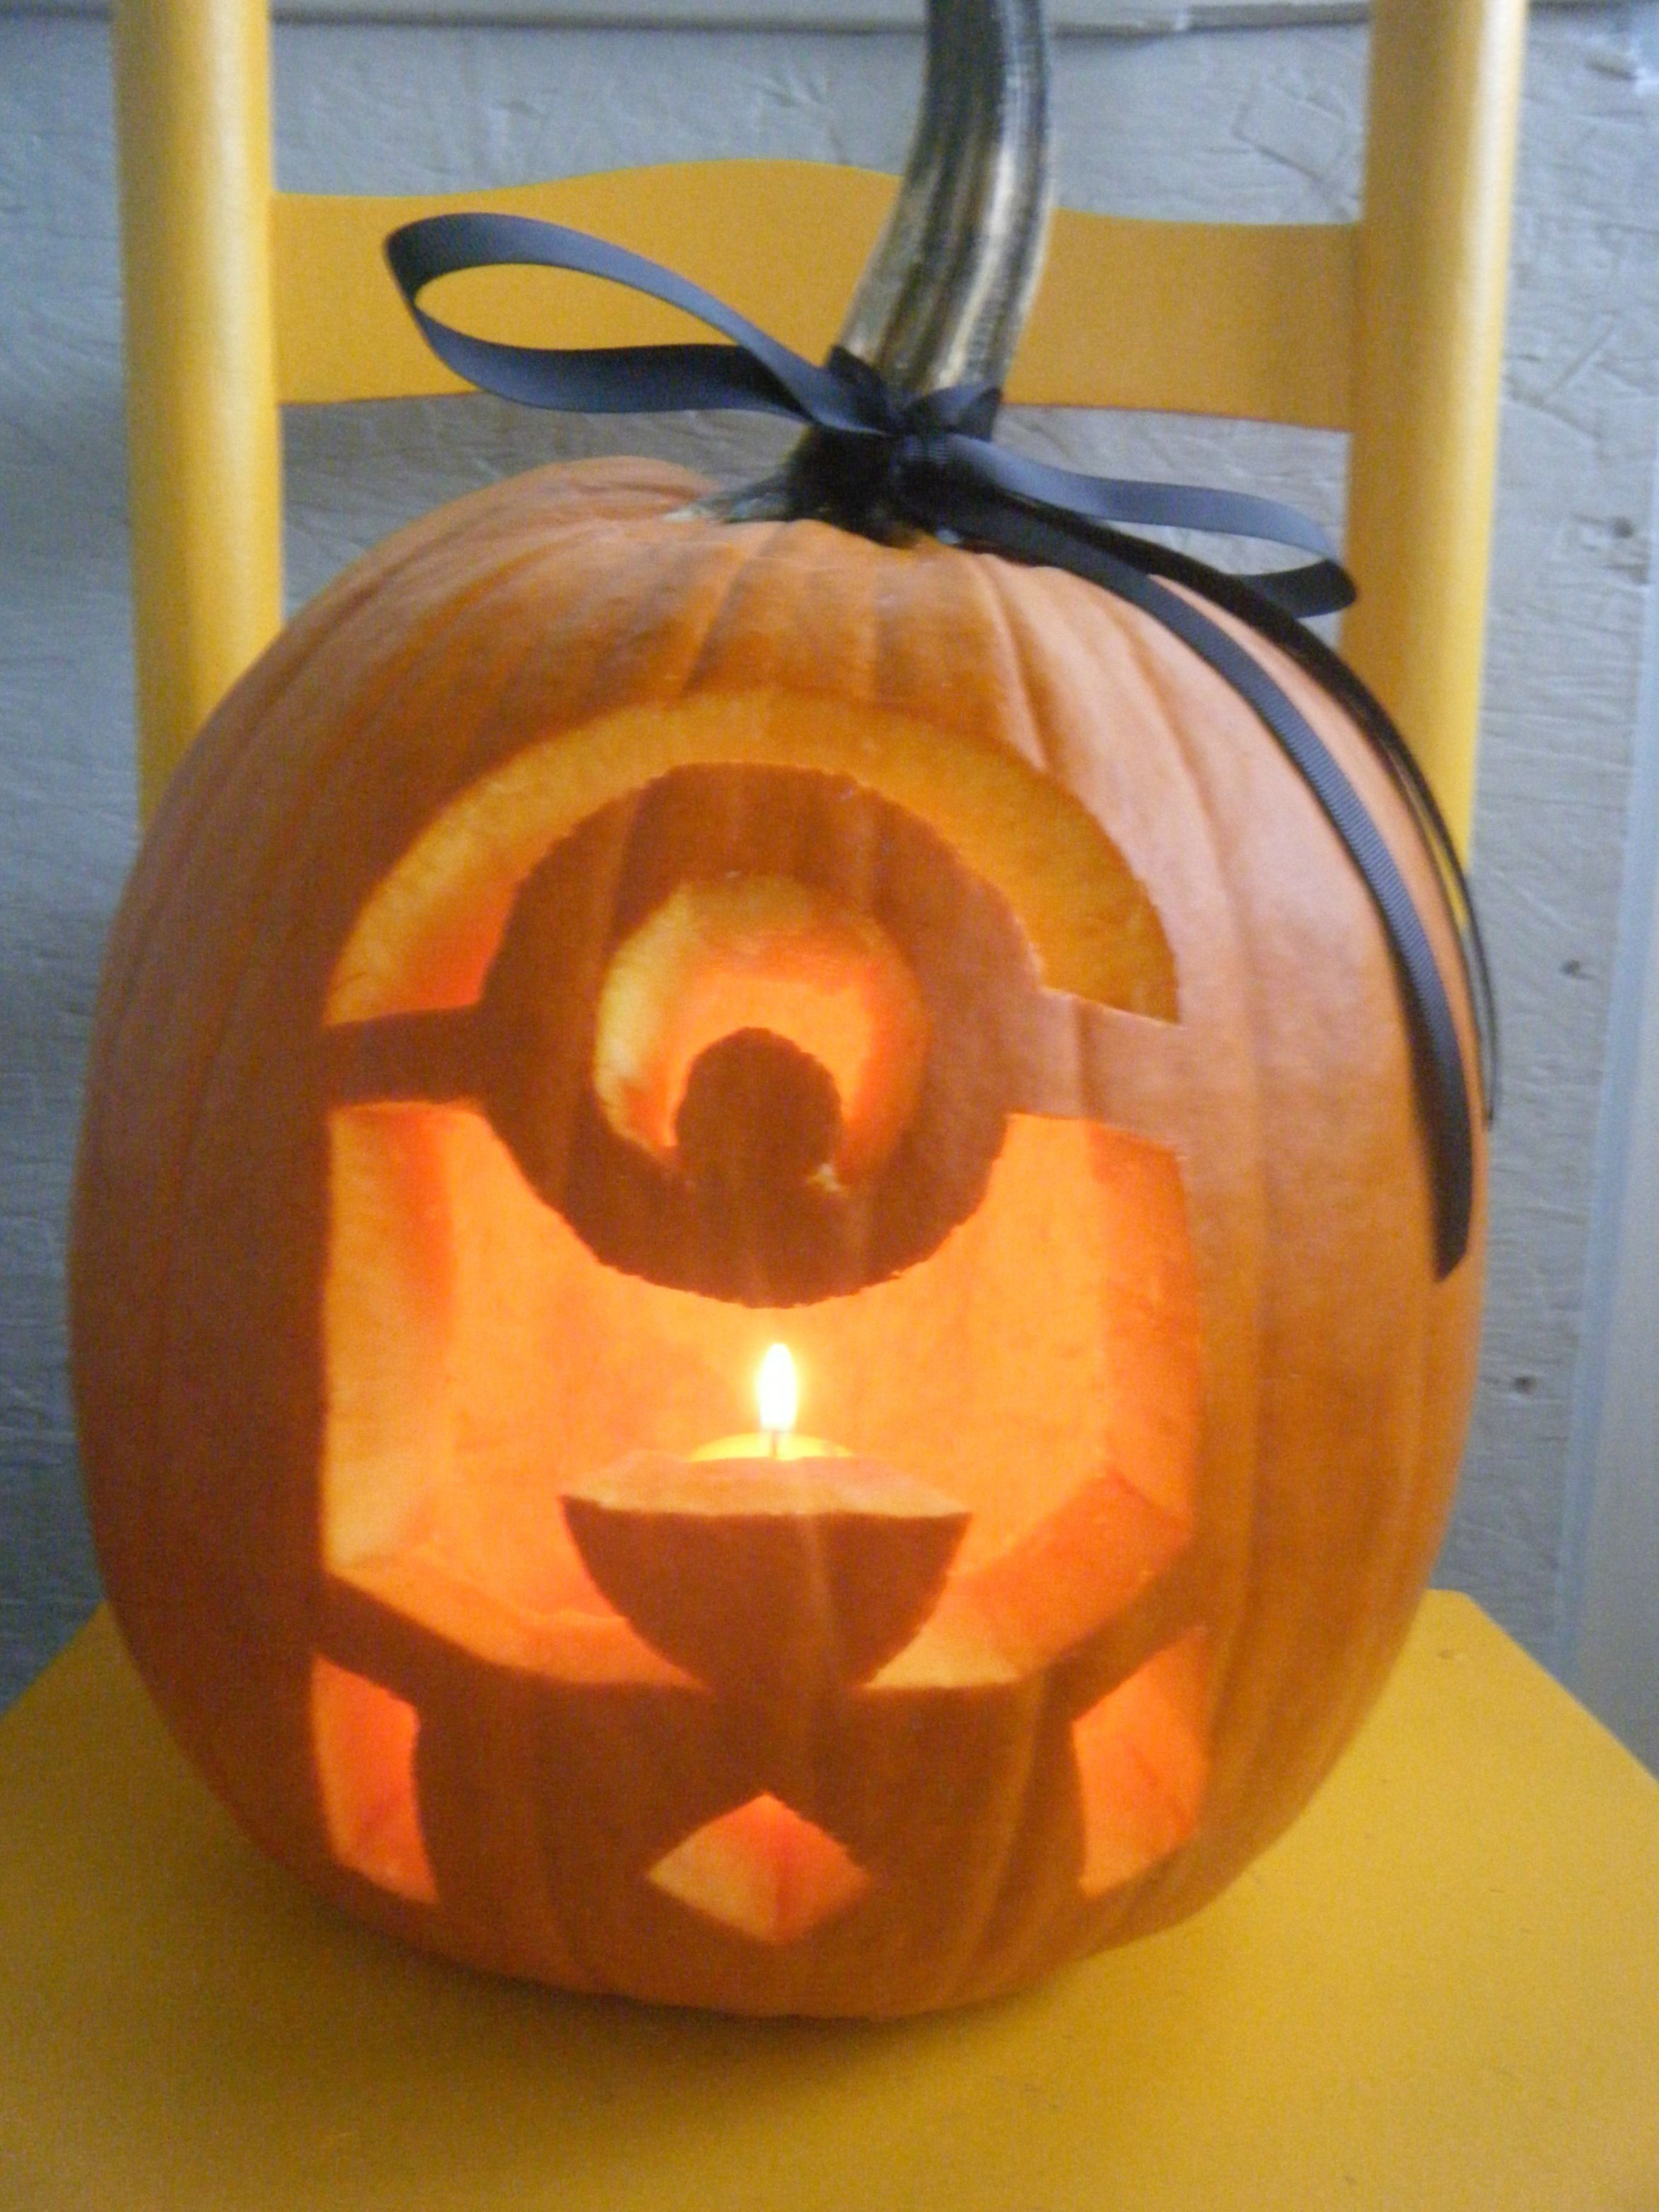 Amazing Pumpkin Carving Ideas Cute Pumpkin Carving Minion Pumpkin Carving